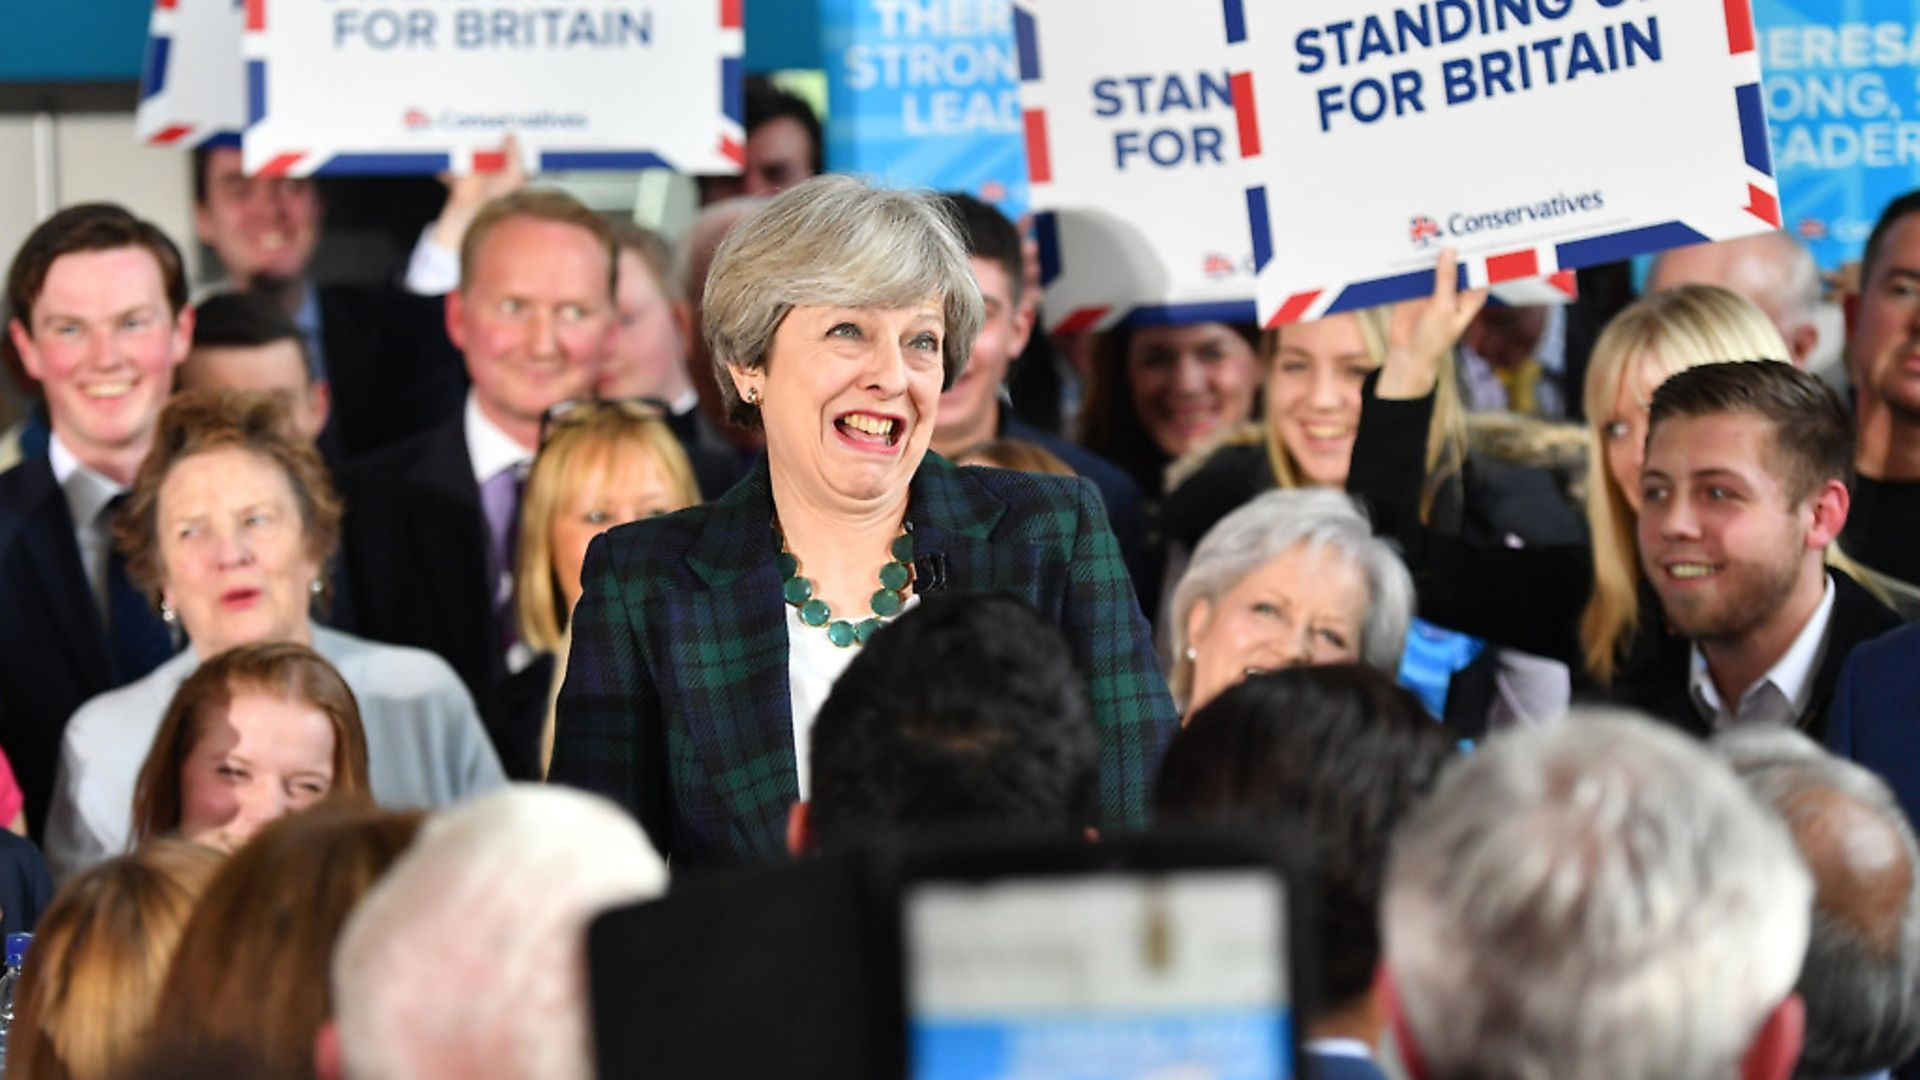 LEEDS, ENGLAND - APRIL 27:  Britain's Prime Minister Theresa May speaks to supporters at a campaign event at Shine Centre on April 27, 2017 in Leeds, United Kingdom. The Prime Minister is campaigning in the seat of Leeds East which has a 12,000 Labour majority before the General Election in June.  (Photo by Anthony Devlin - WPA Pool/Getty Images) - Credit: Getty Images